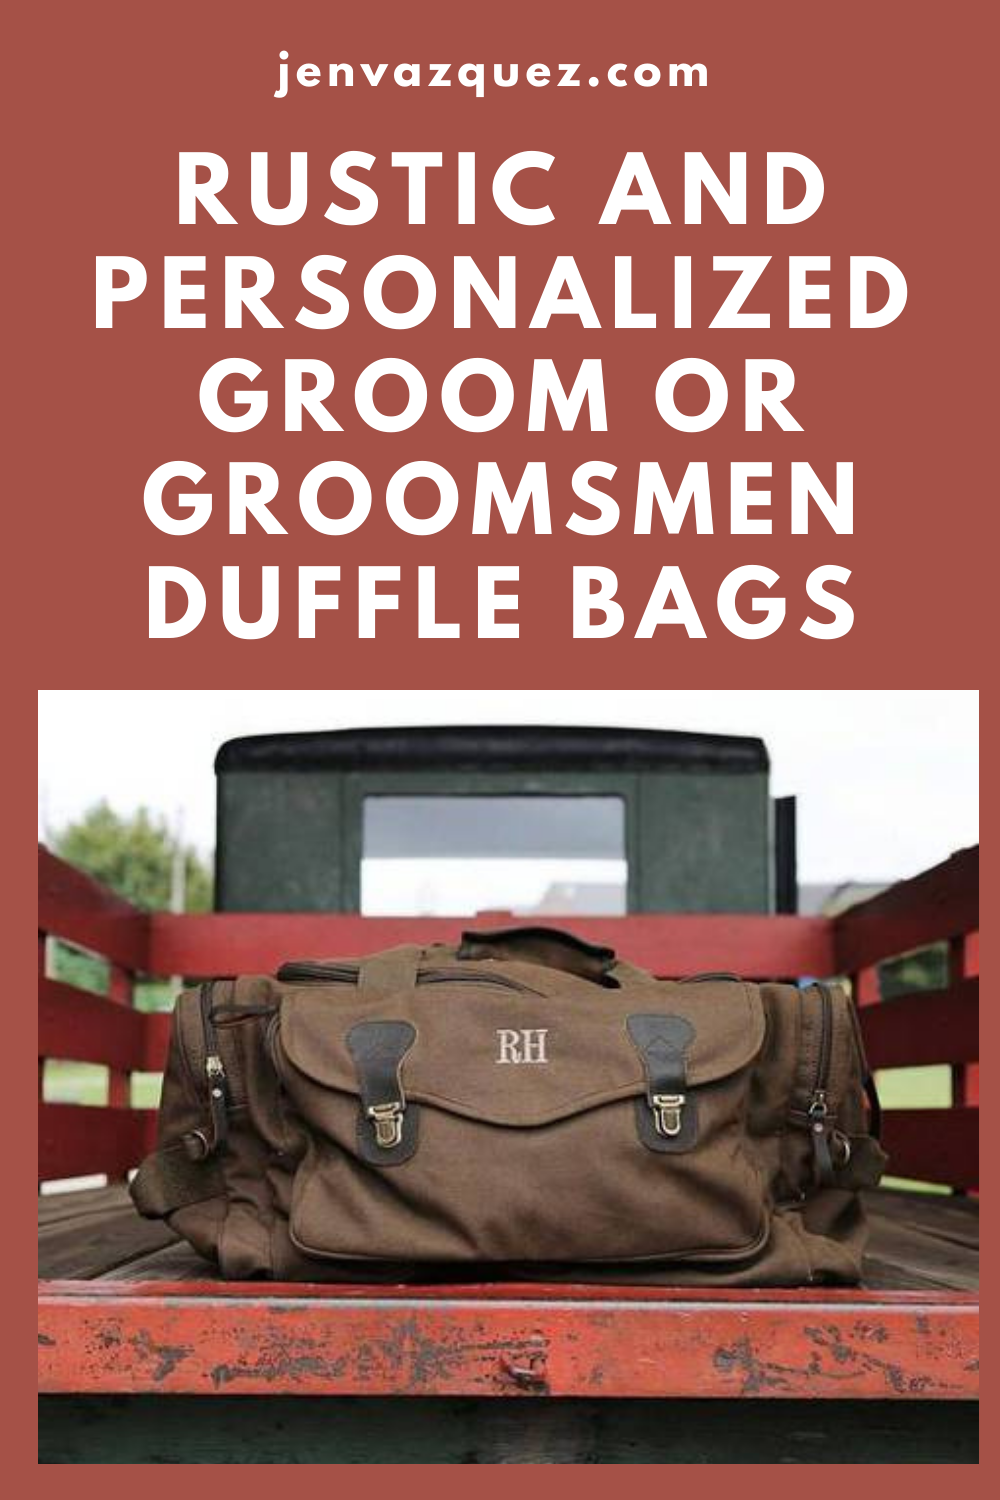 Rustic duffle bag for groom or groomsmen